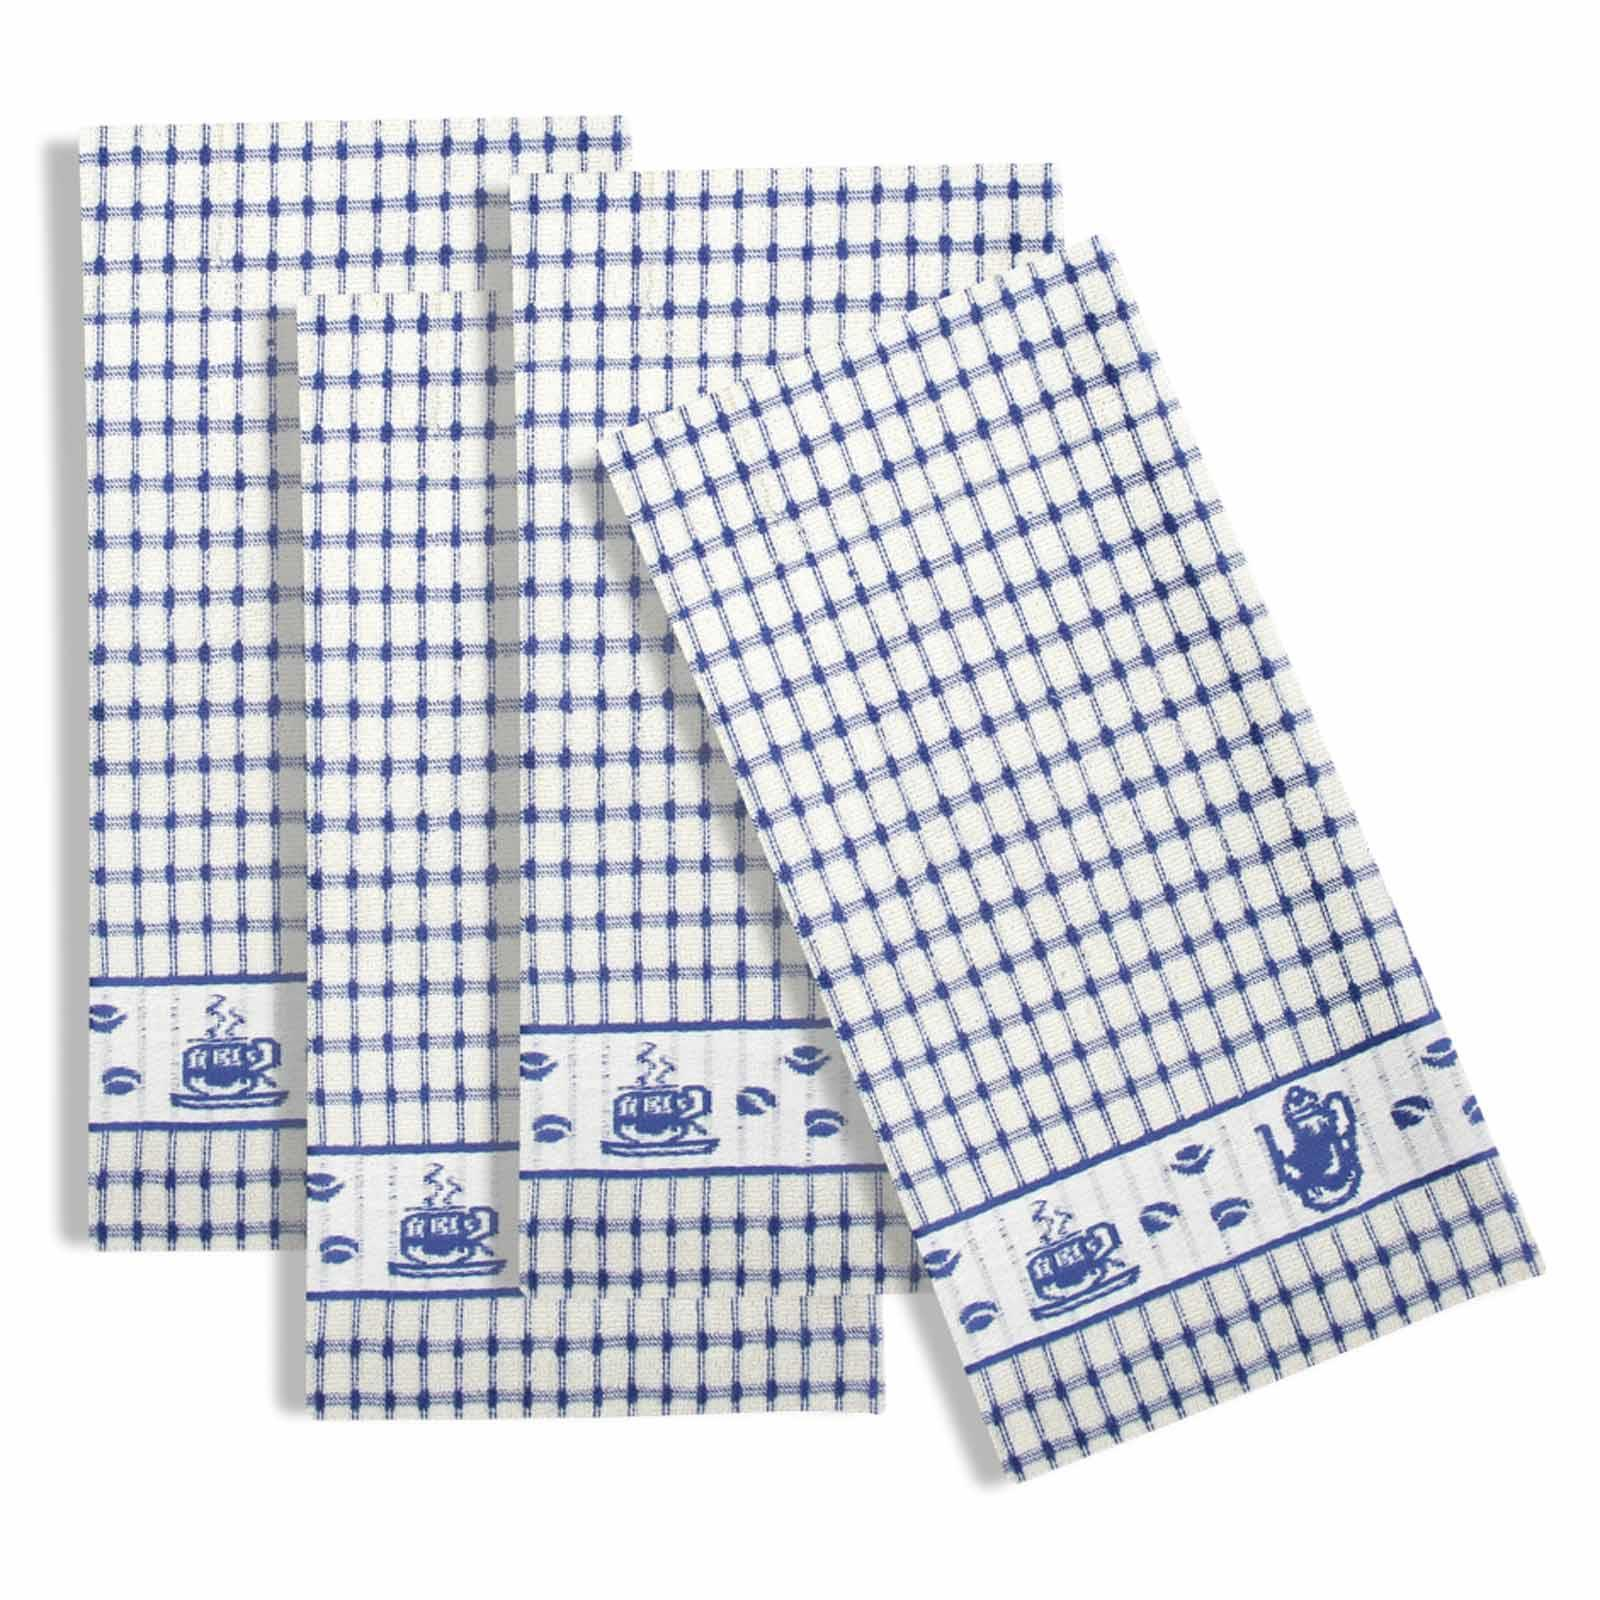 Packs-of-2-4-6-12-Tea-Towels-100-Cotton-Terry-Kitchen-Dish-Drying-Towel-Sets thumbnail 66